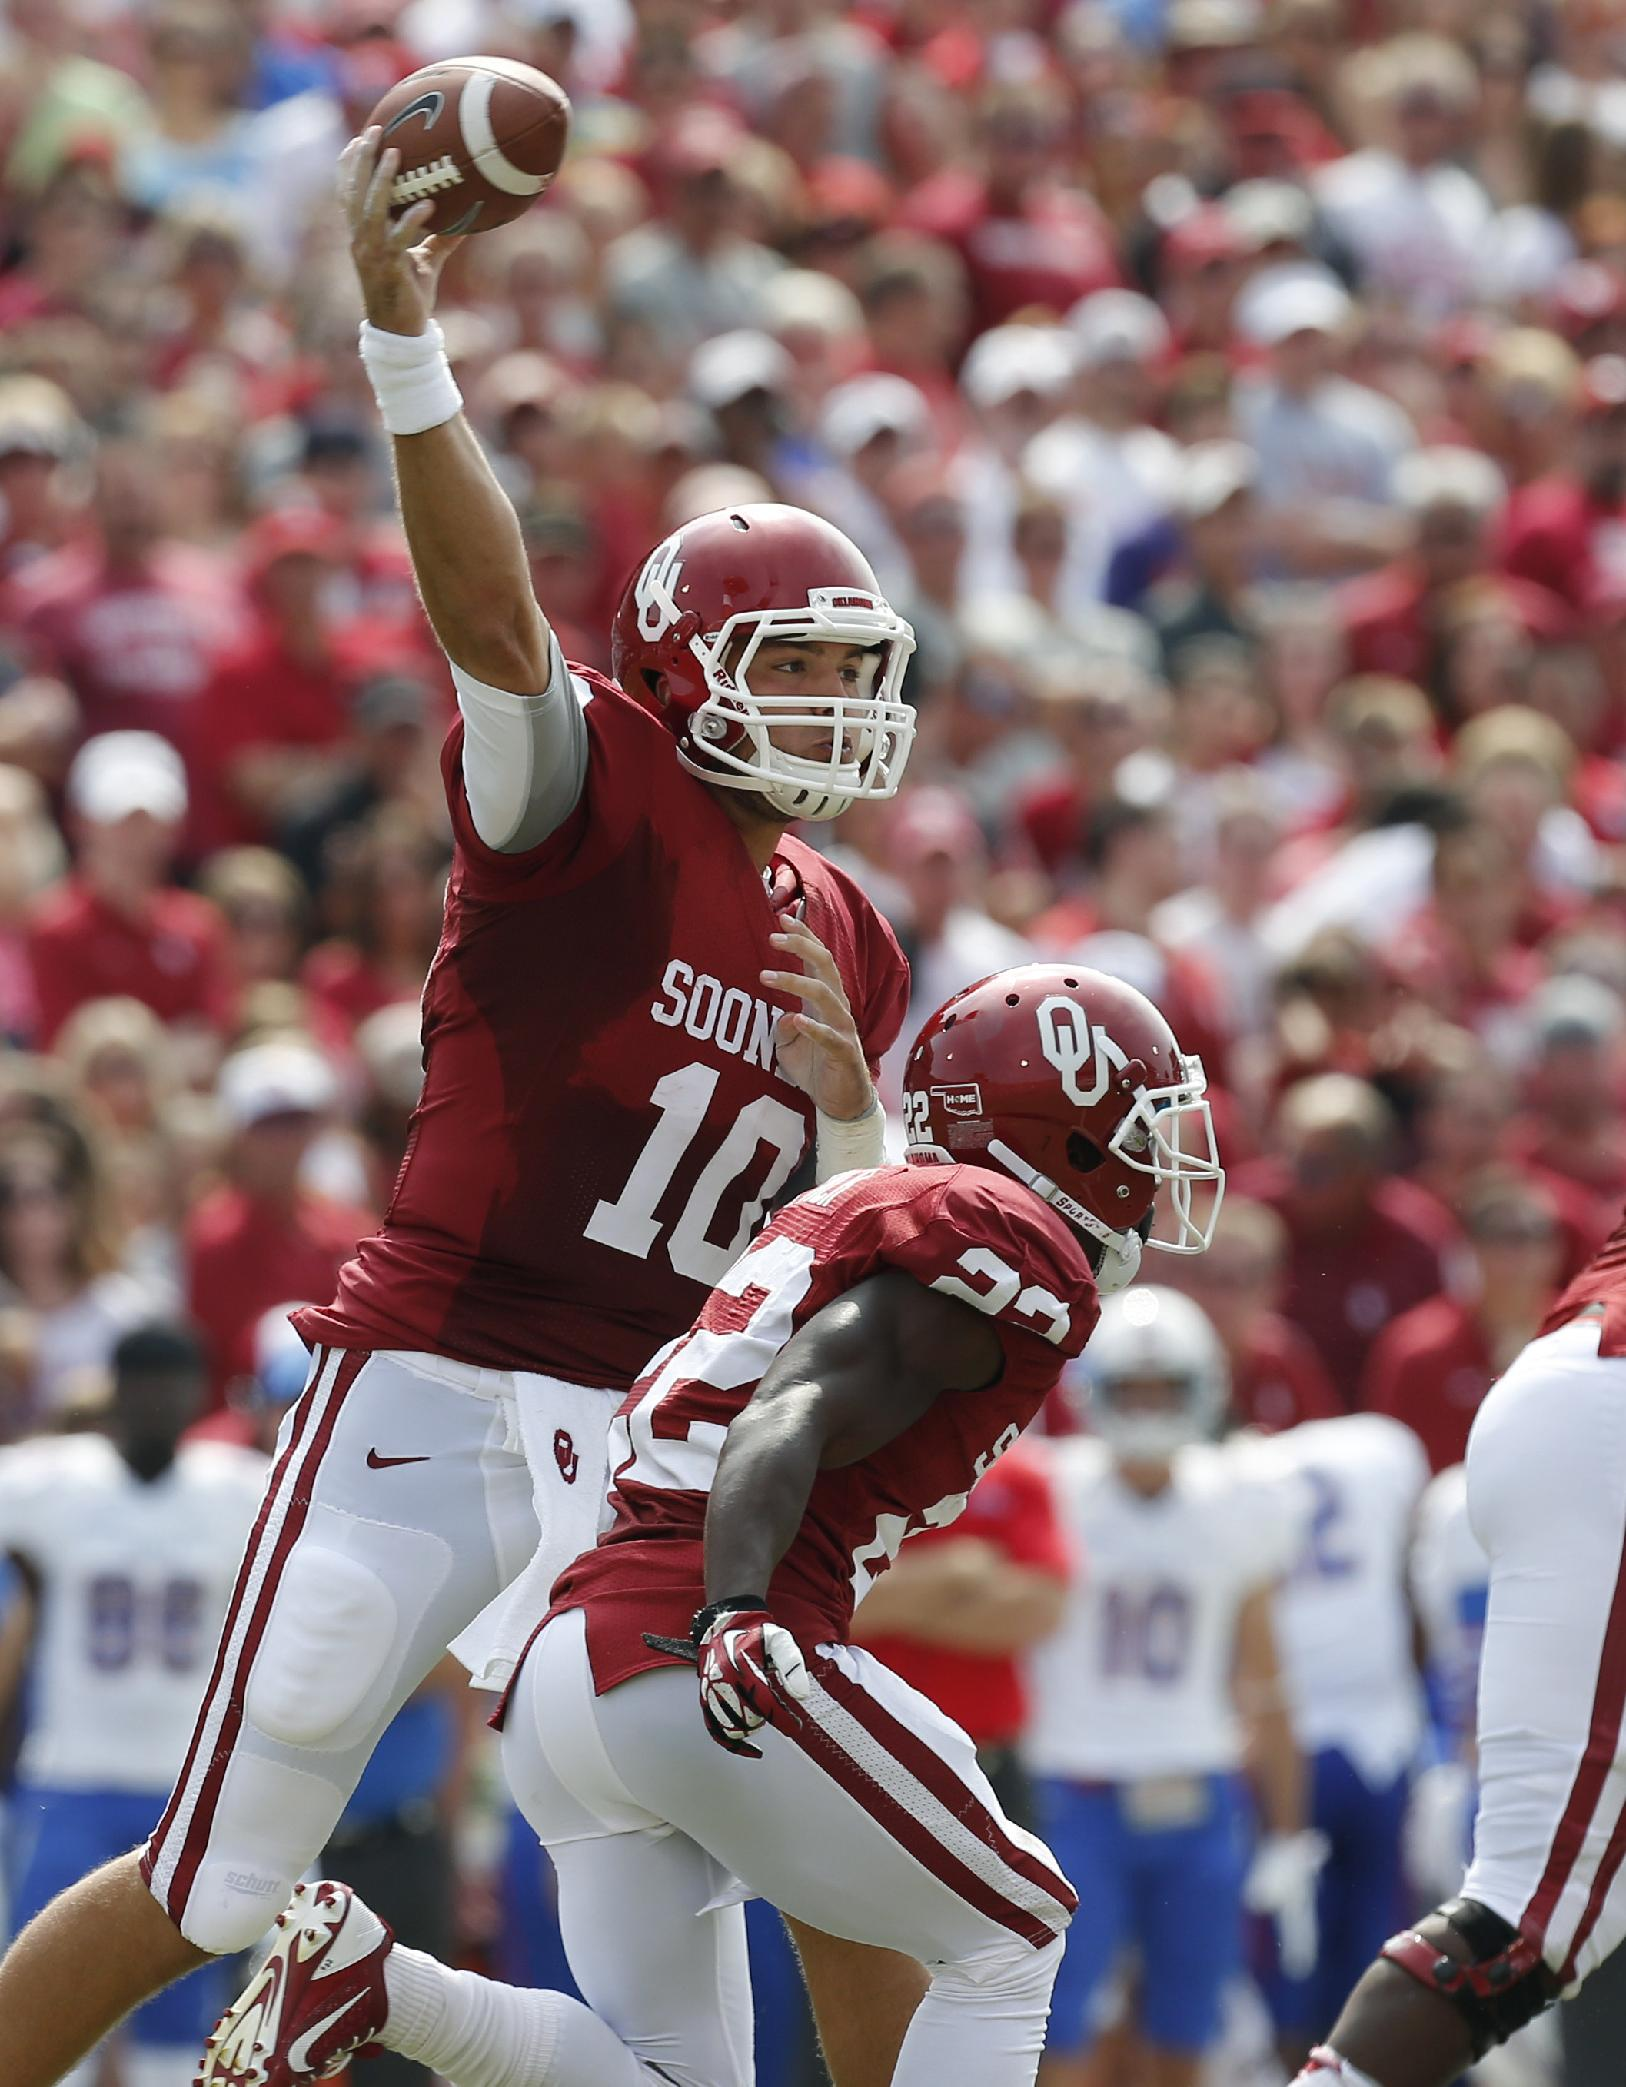 Oklahoma quarterback Blake Bell (10) passes over teammate Roy Finch (22) in the first quarter of an NCAA college football game against Tulsa in Norman, Okla., Saturday, Sept. 14, 2013